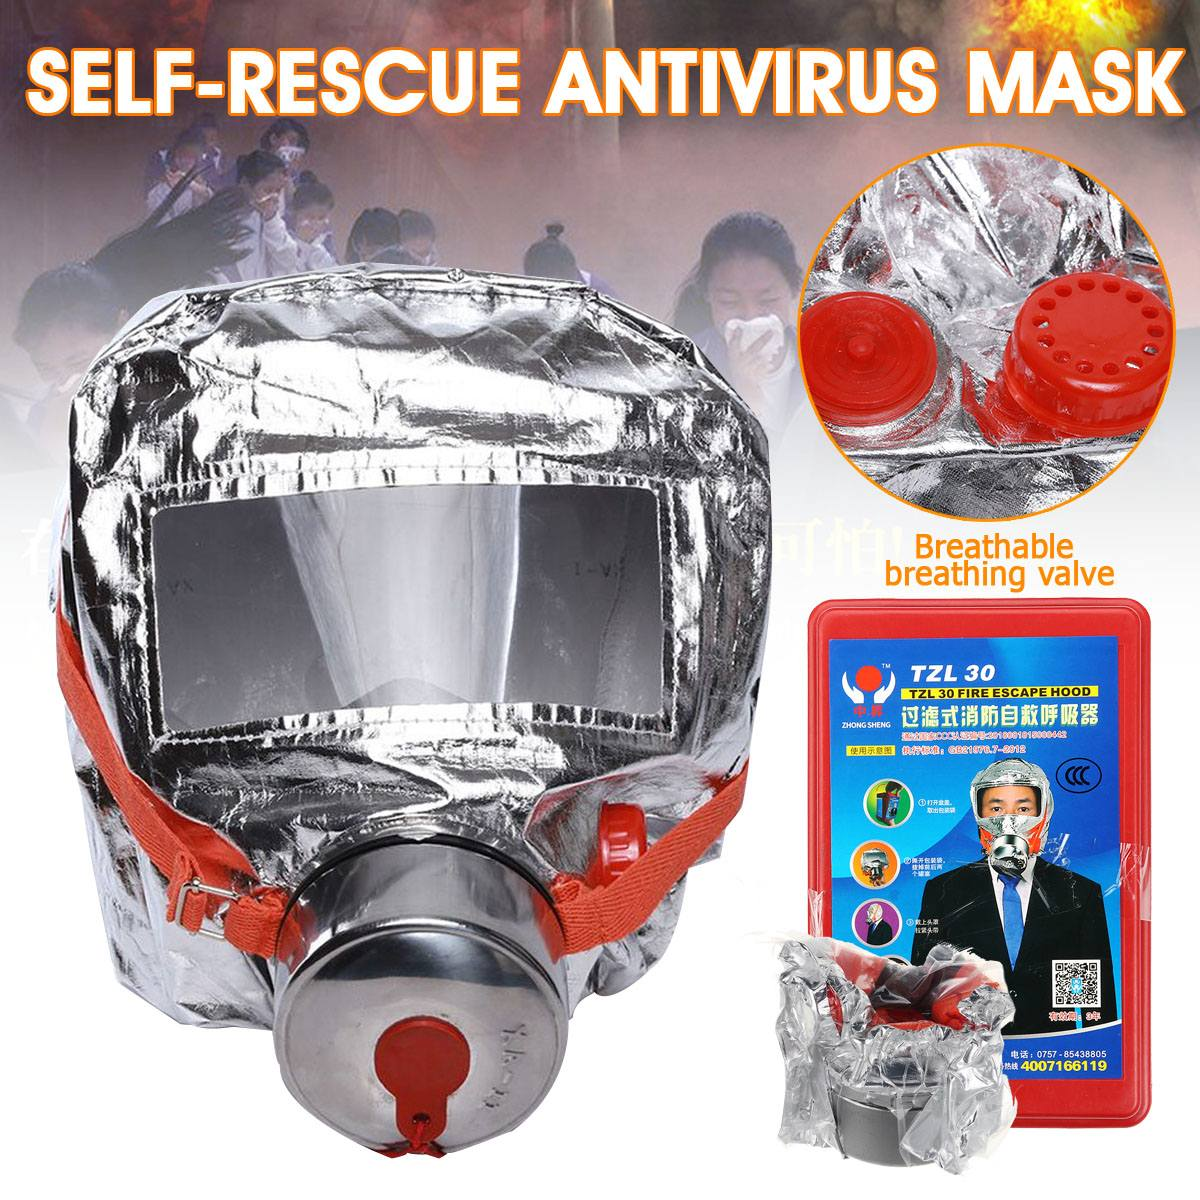 Smoke Fire-Mask Filtering Respiratory Protective Devices for Hotel Household Firefighting Escape Self-rescue Antivirus MaskSmoke Fire-Mask Filtering Respiratory Protective Devices for Hotel Household Firefighting Escape Self-rescue Antivirus Mask